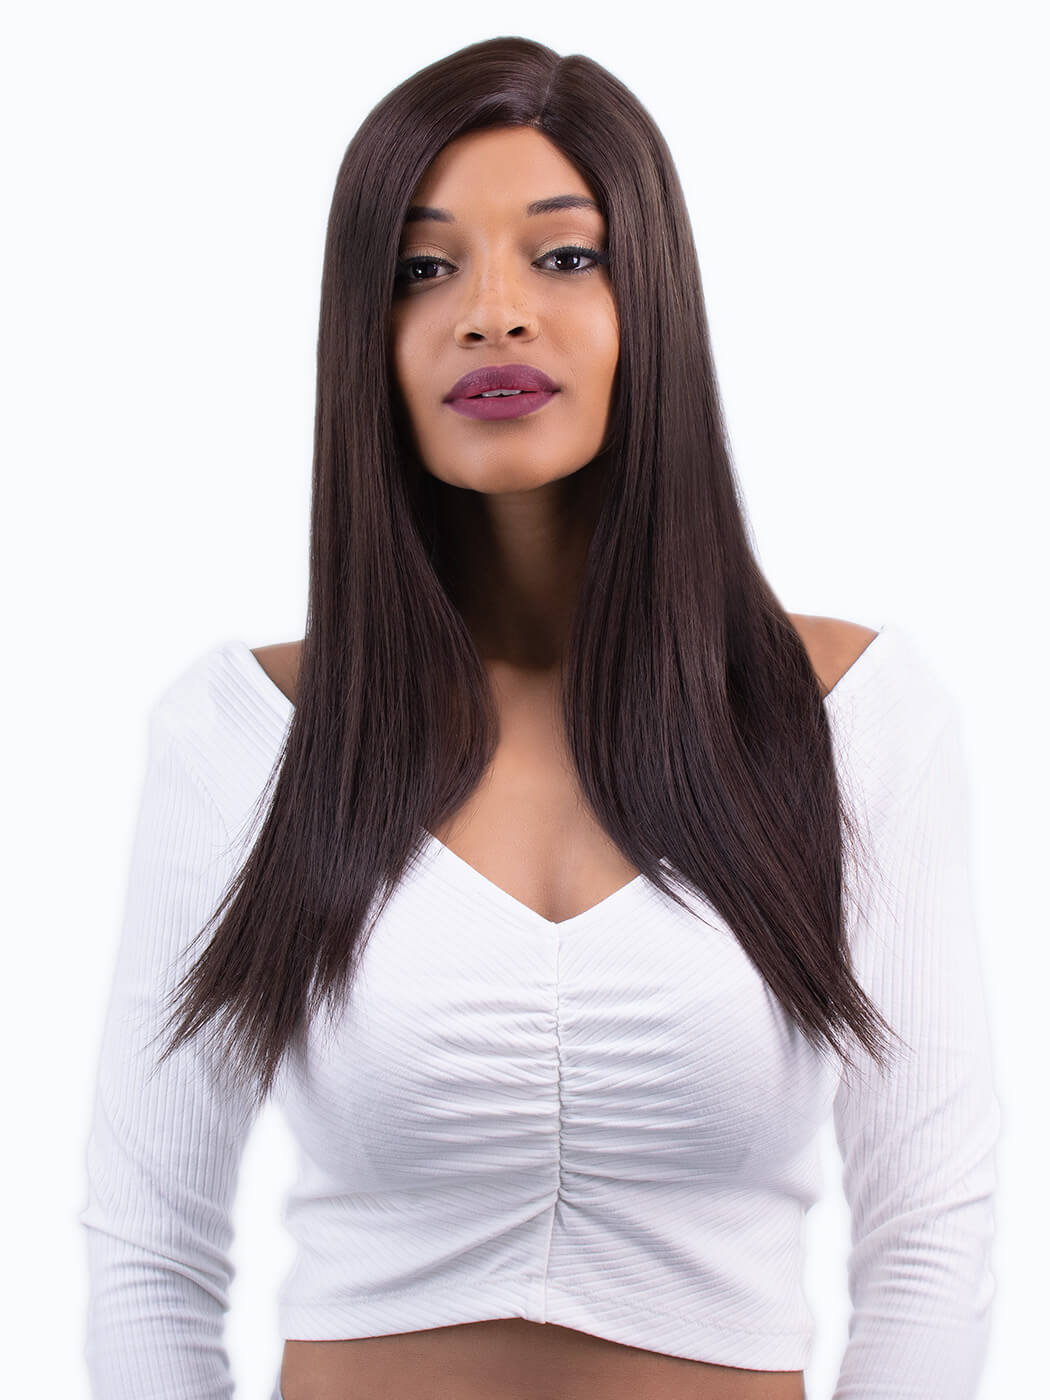 Velvet - Tim Carli straight brown wig worn on model front view | Lace Front Wigs | Long wigs | Quality wigs